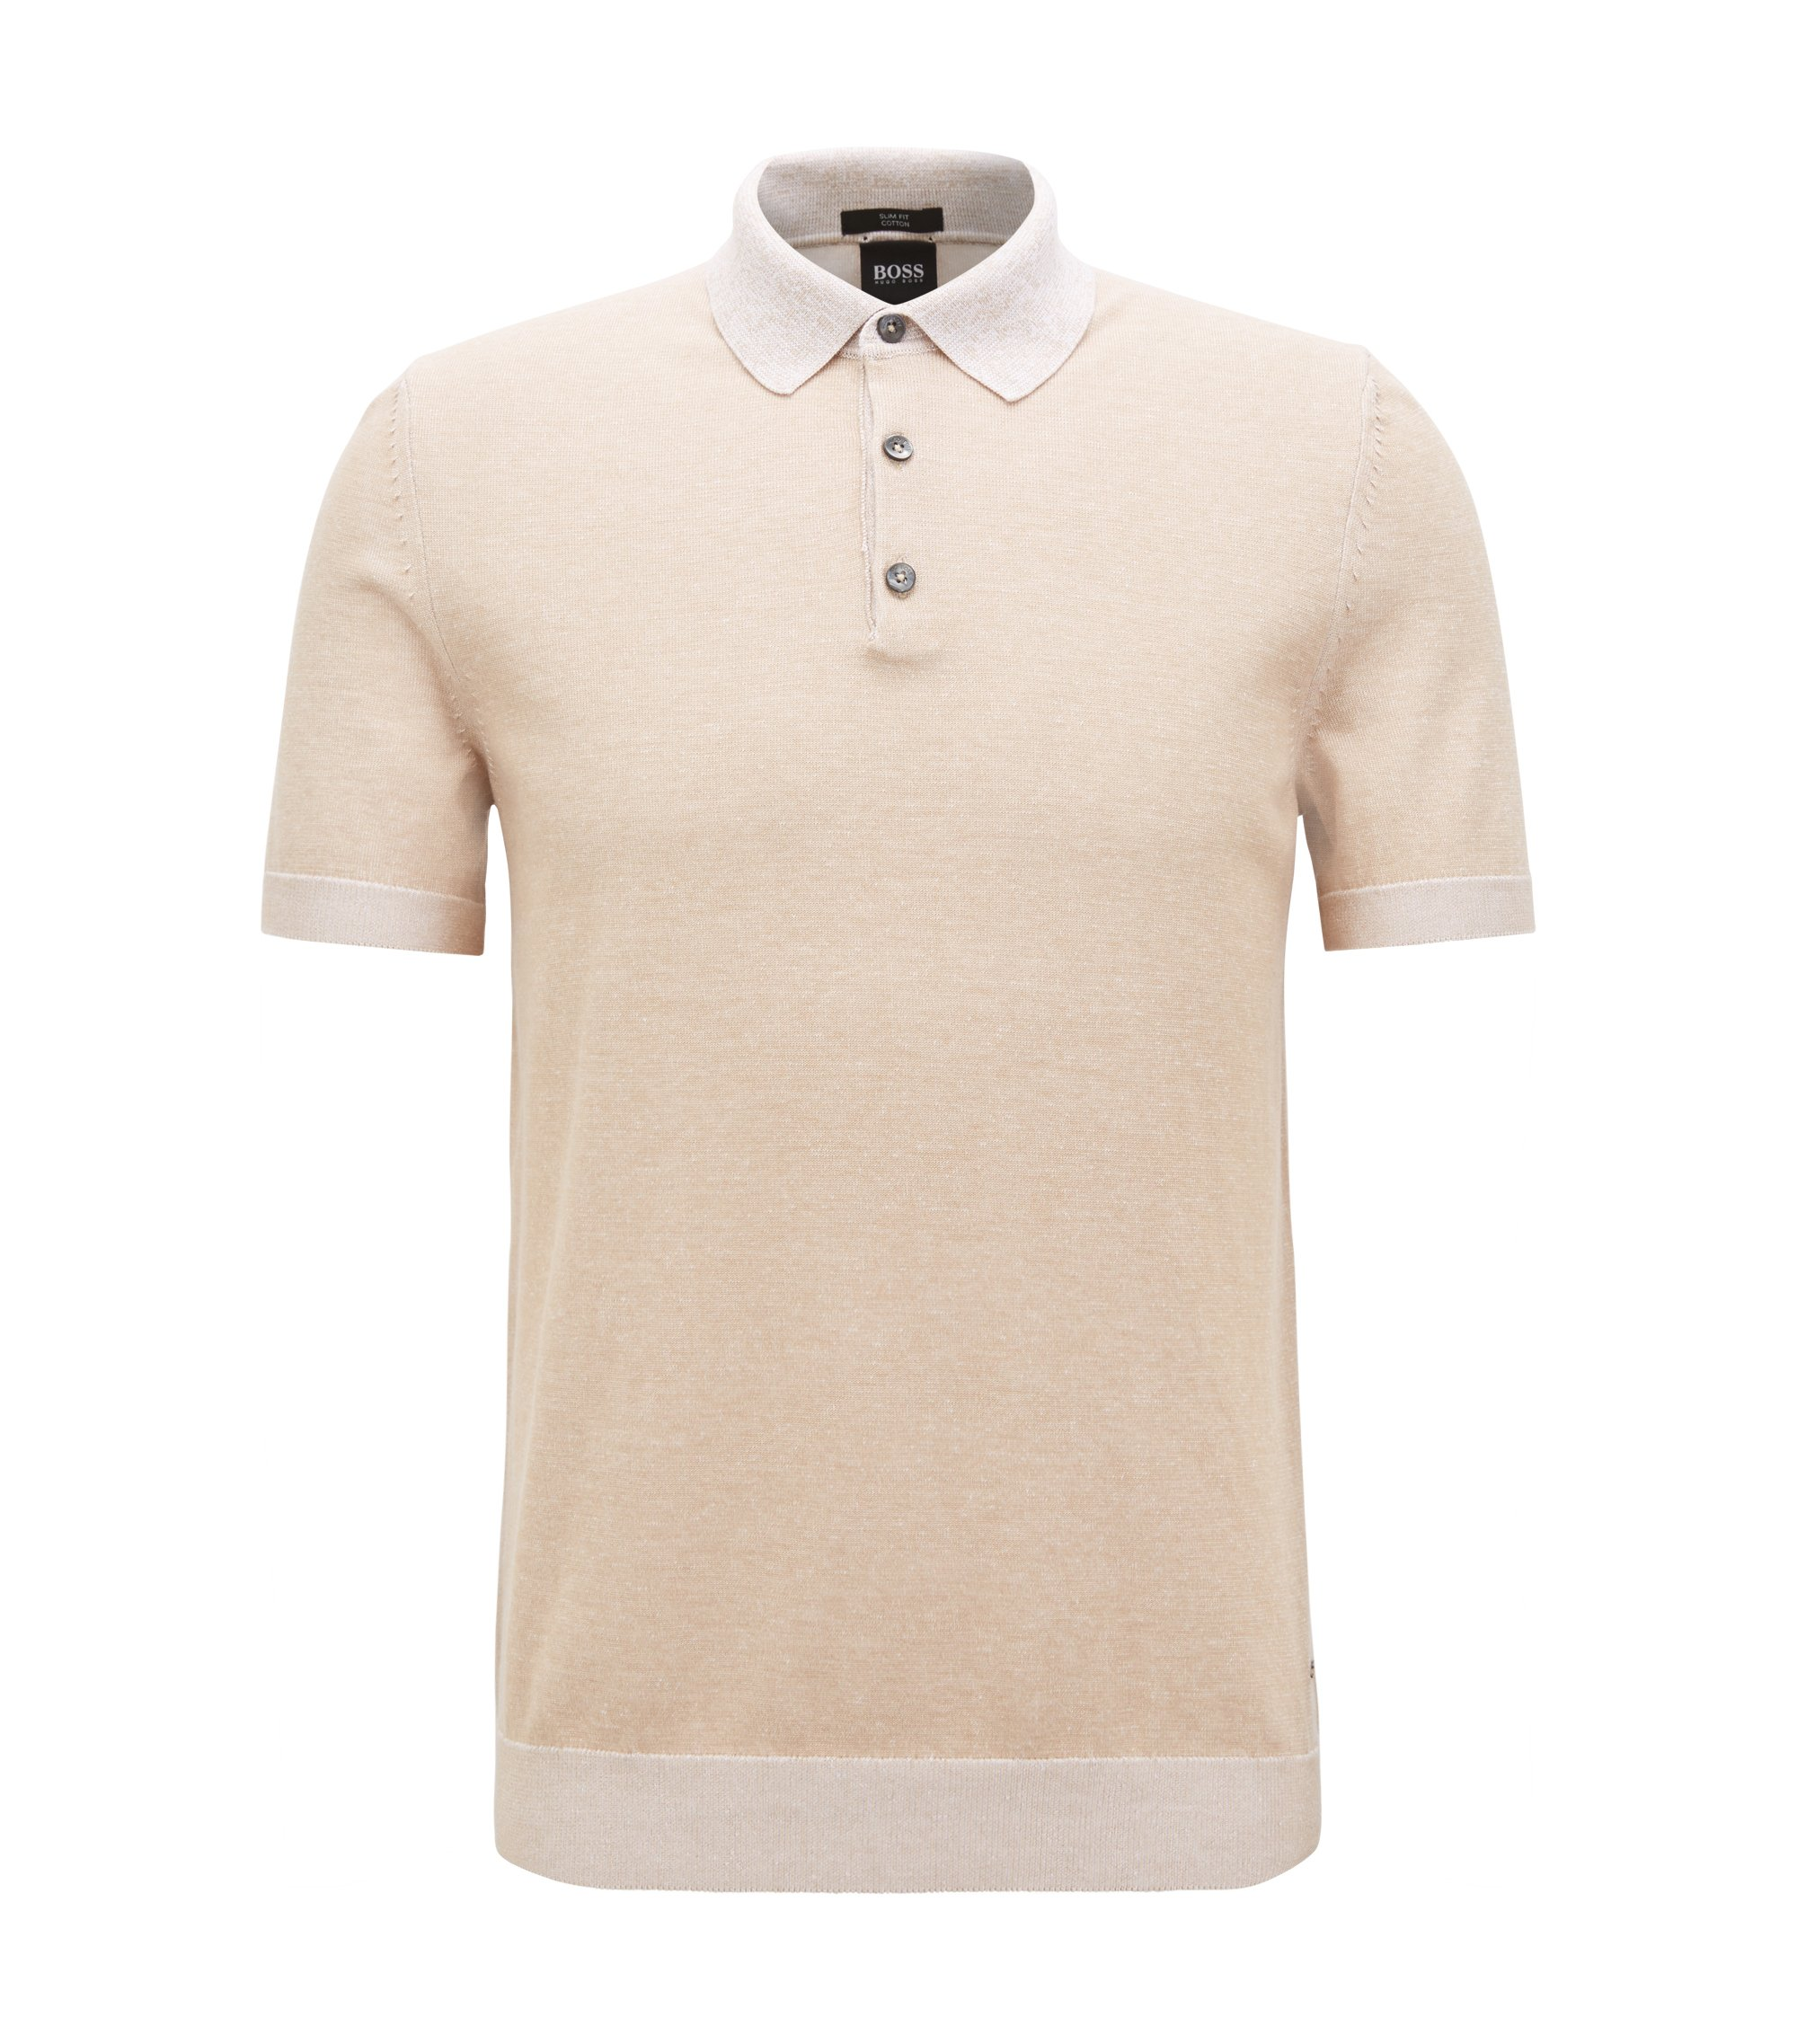 Slim-fit polo shirt in knitted melange cotton, Natural